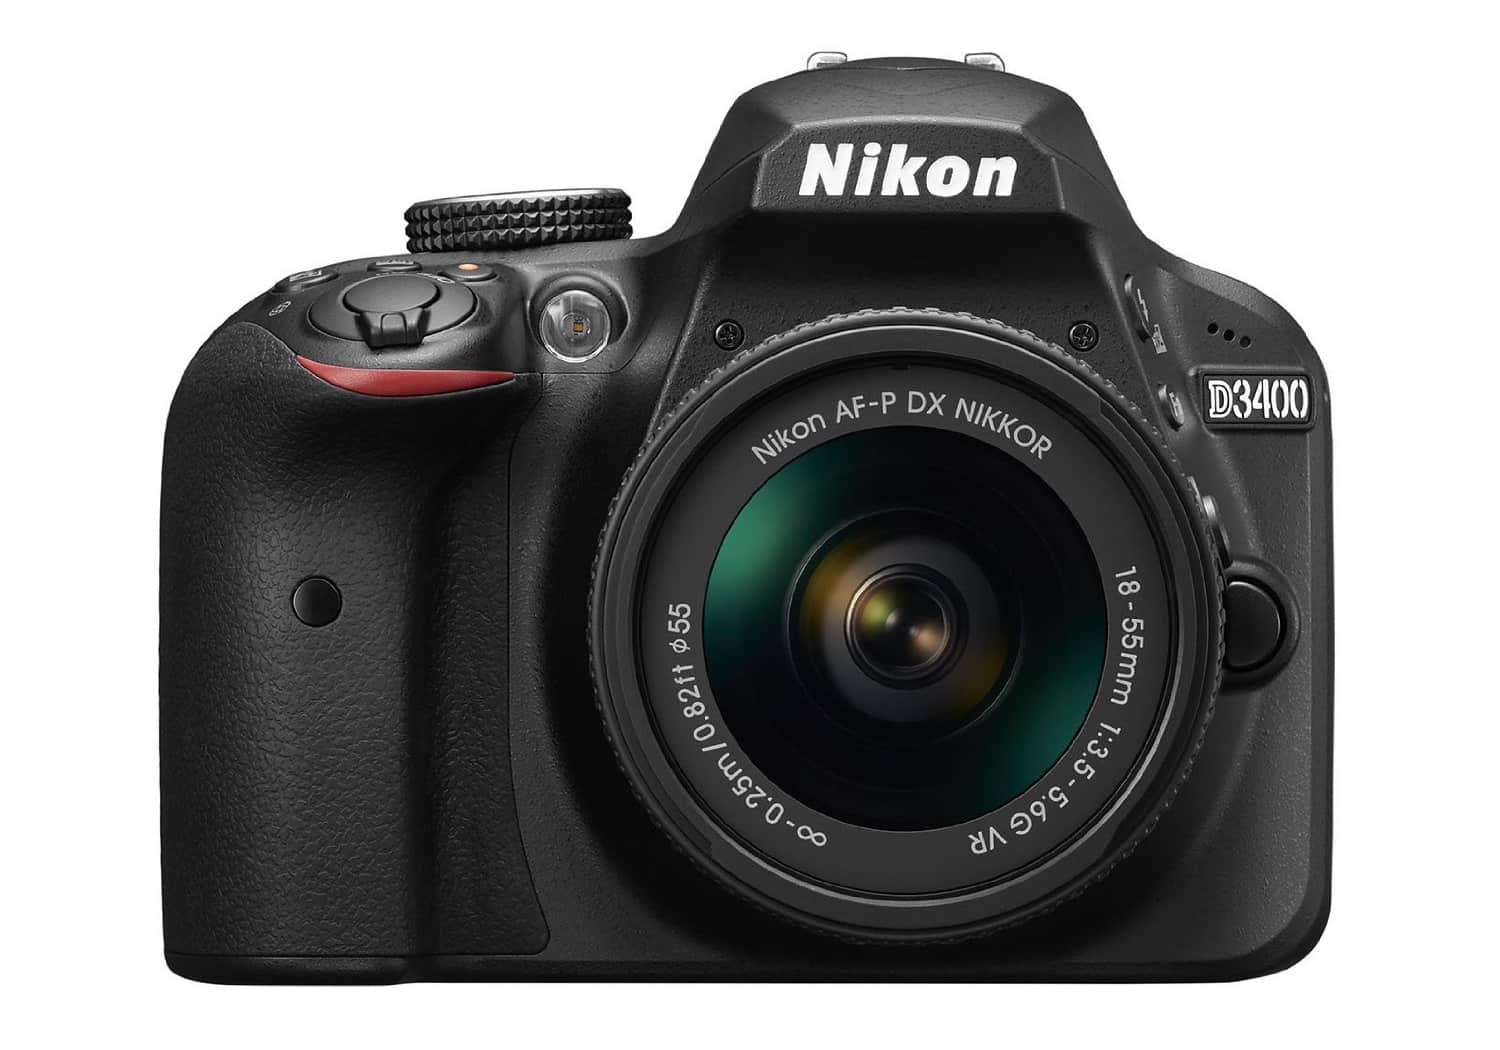 Front view of Nikon's D3400 DSLR Camera.